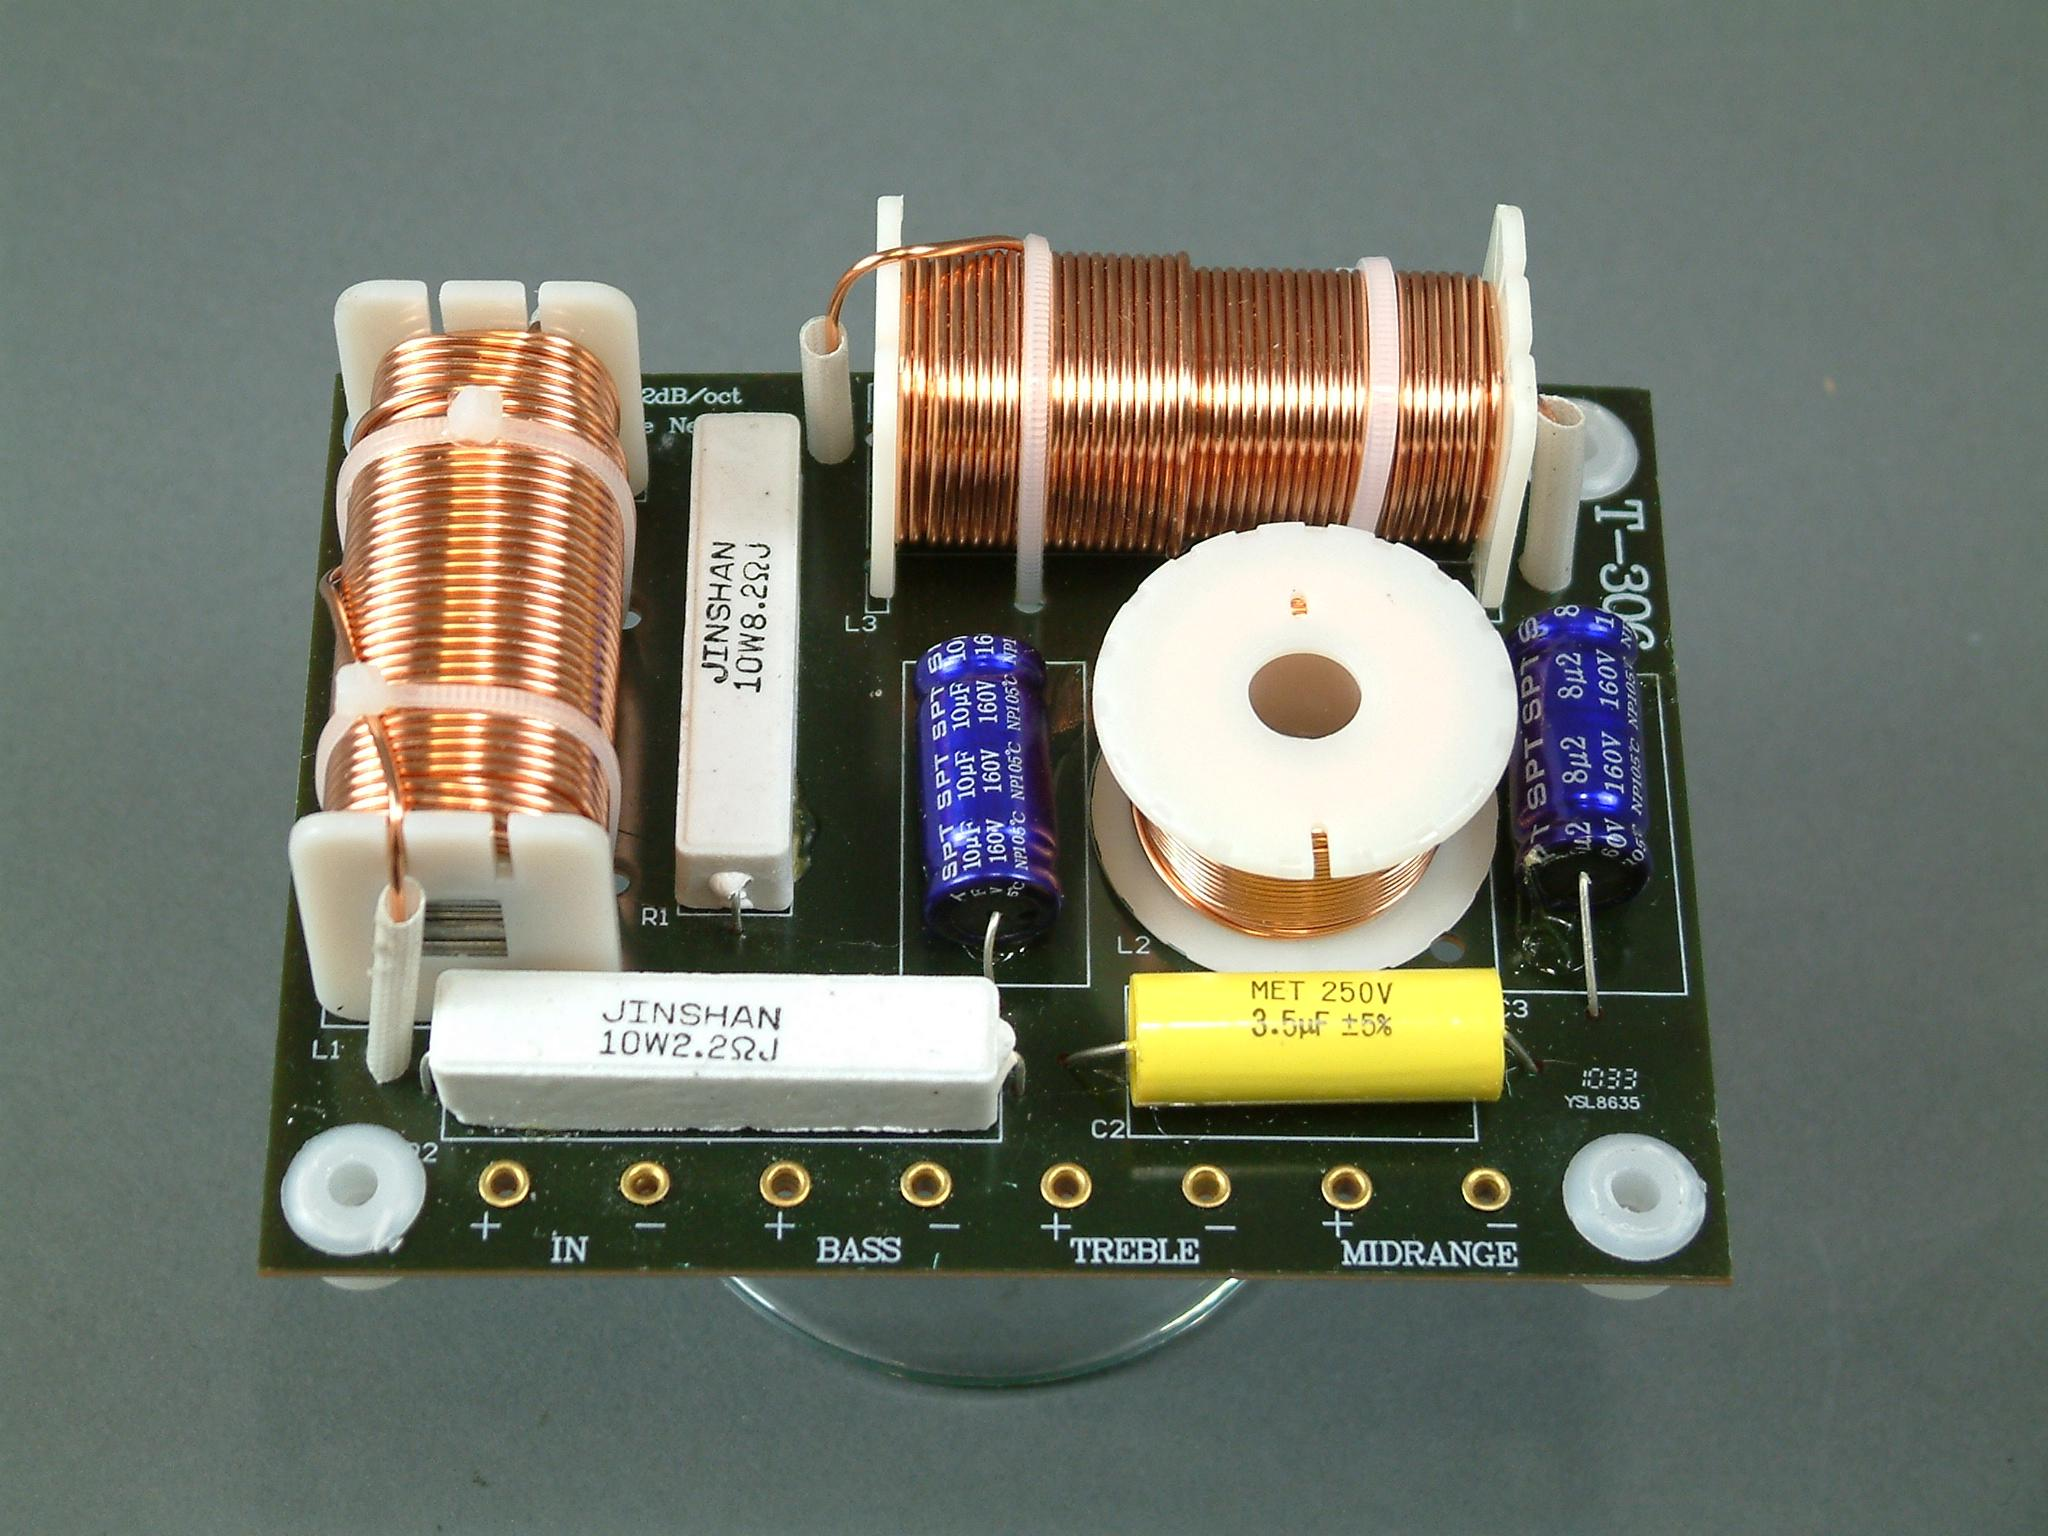 em t 306_1 em t 306 three way crossover high power 1000 watts rms a pair 3-Way Wiring Diagram Multiple Lights at mifinder.co